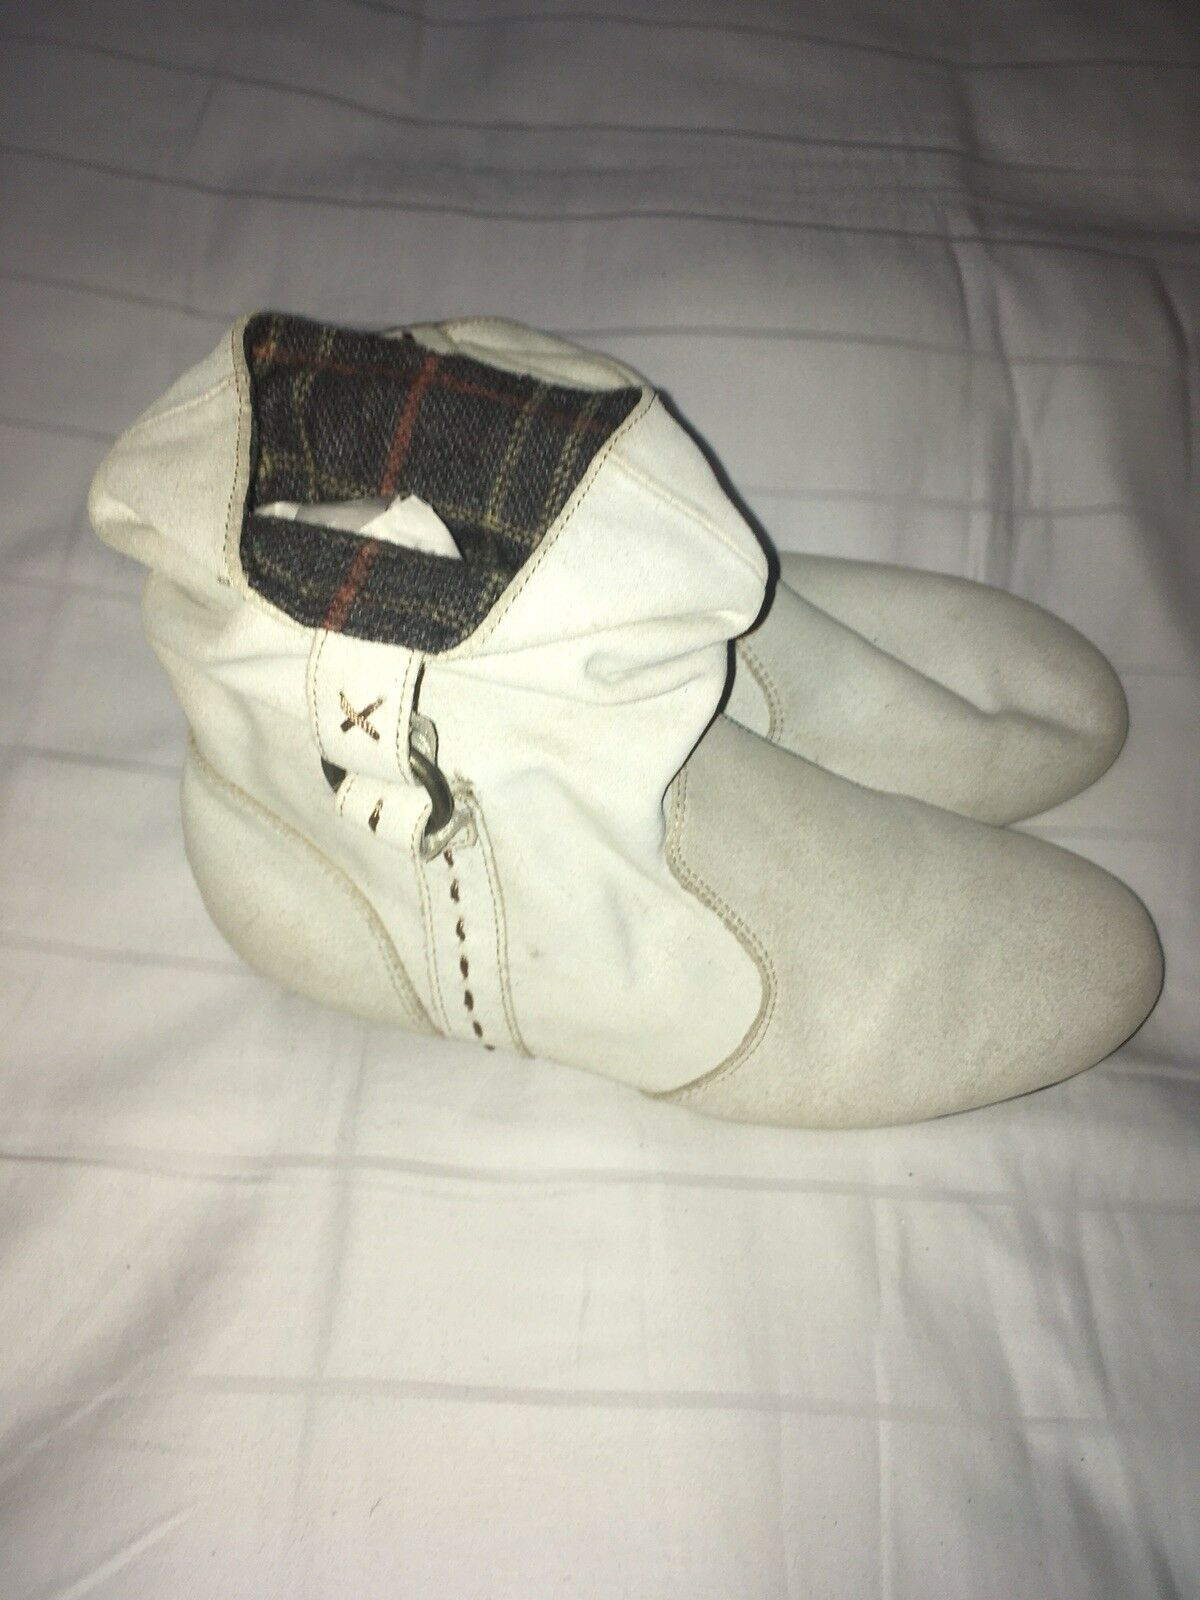 Kenzie Beware Booties White Ivory Leather Size 7.5 NEW Plaid Flannel Lined Cuff